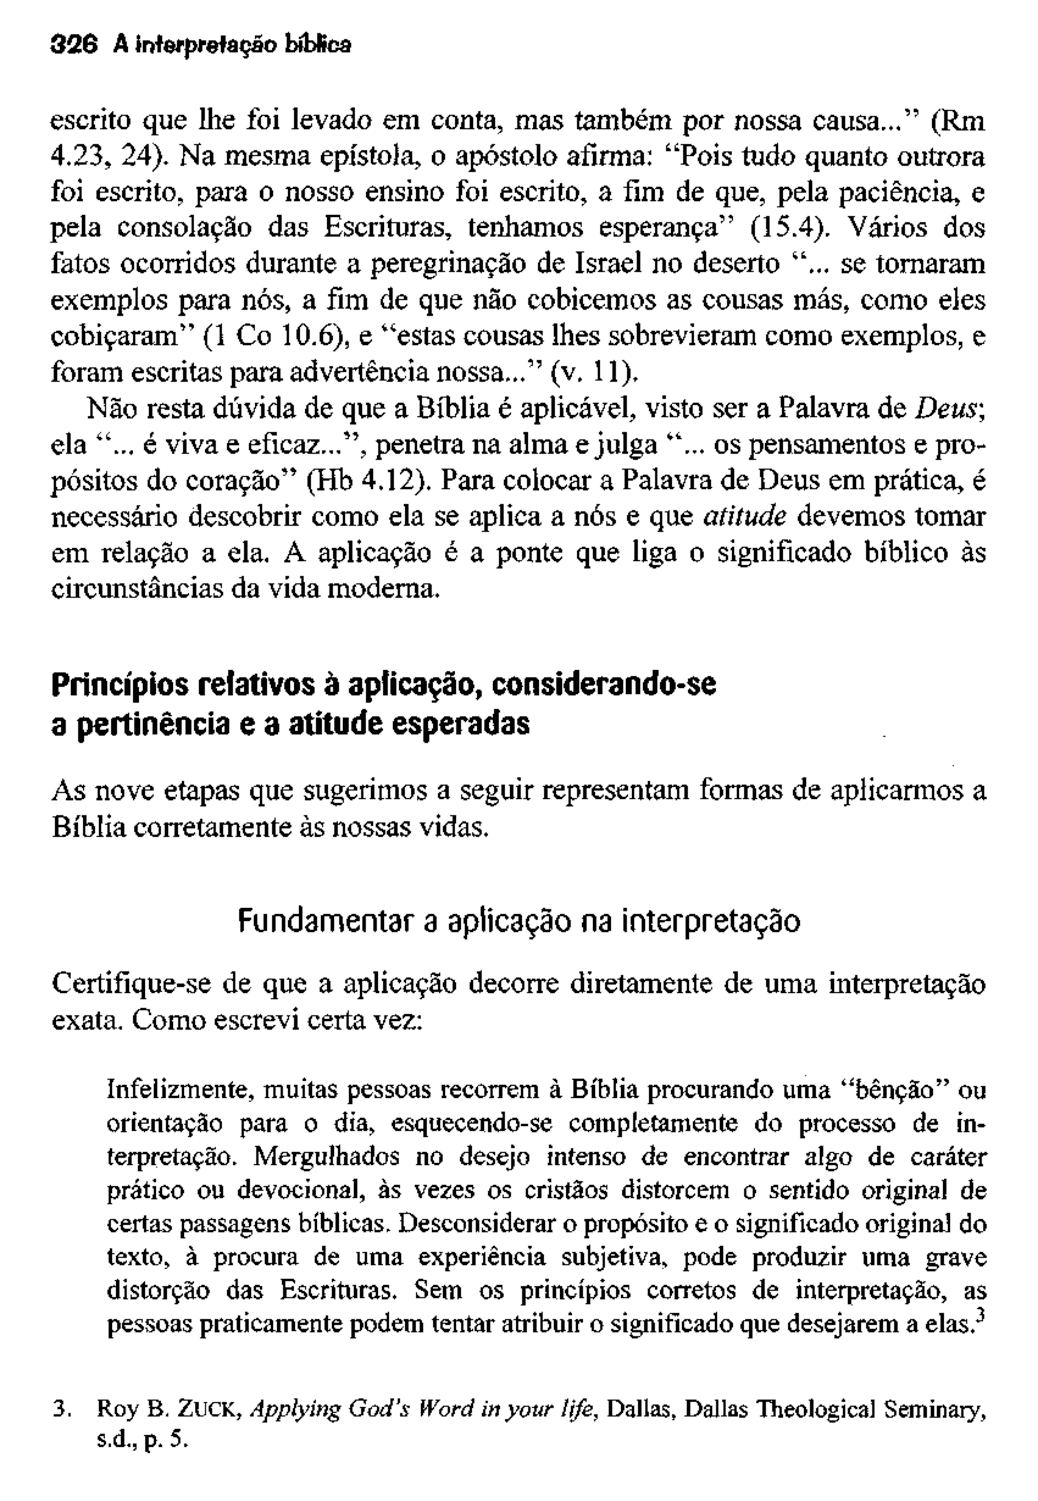 Page 320